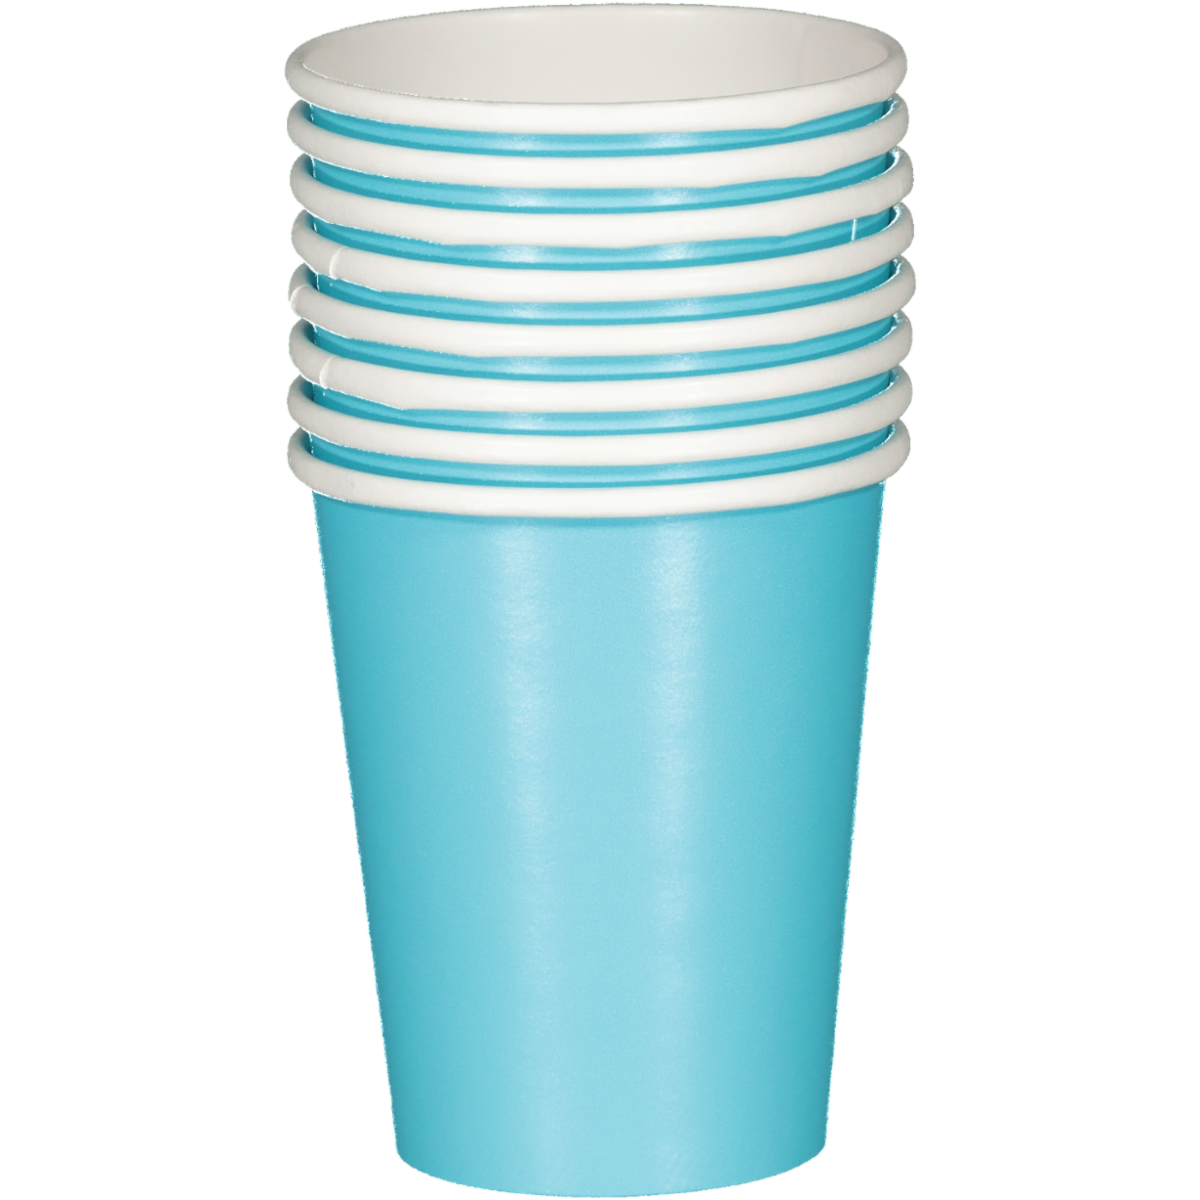 SOLID BERMUDA BLUE CUPS 8PCS